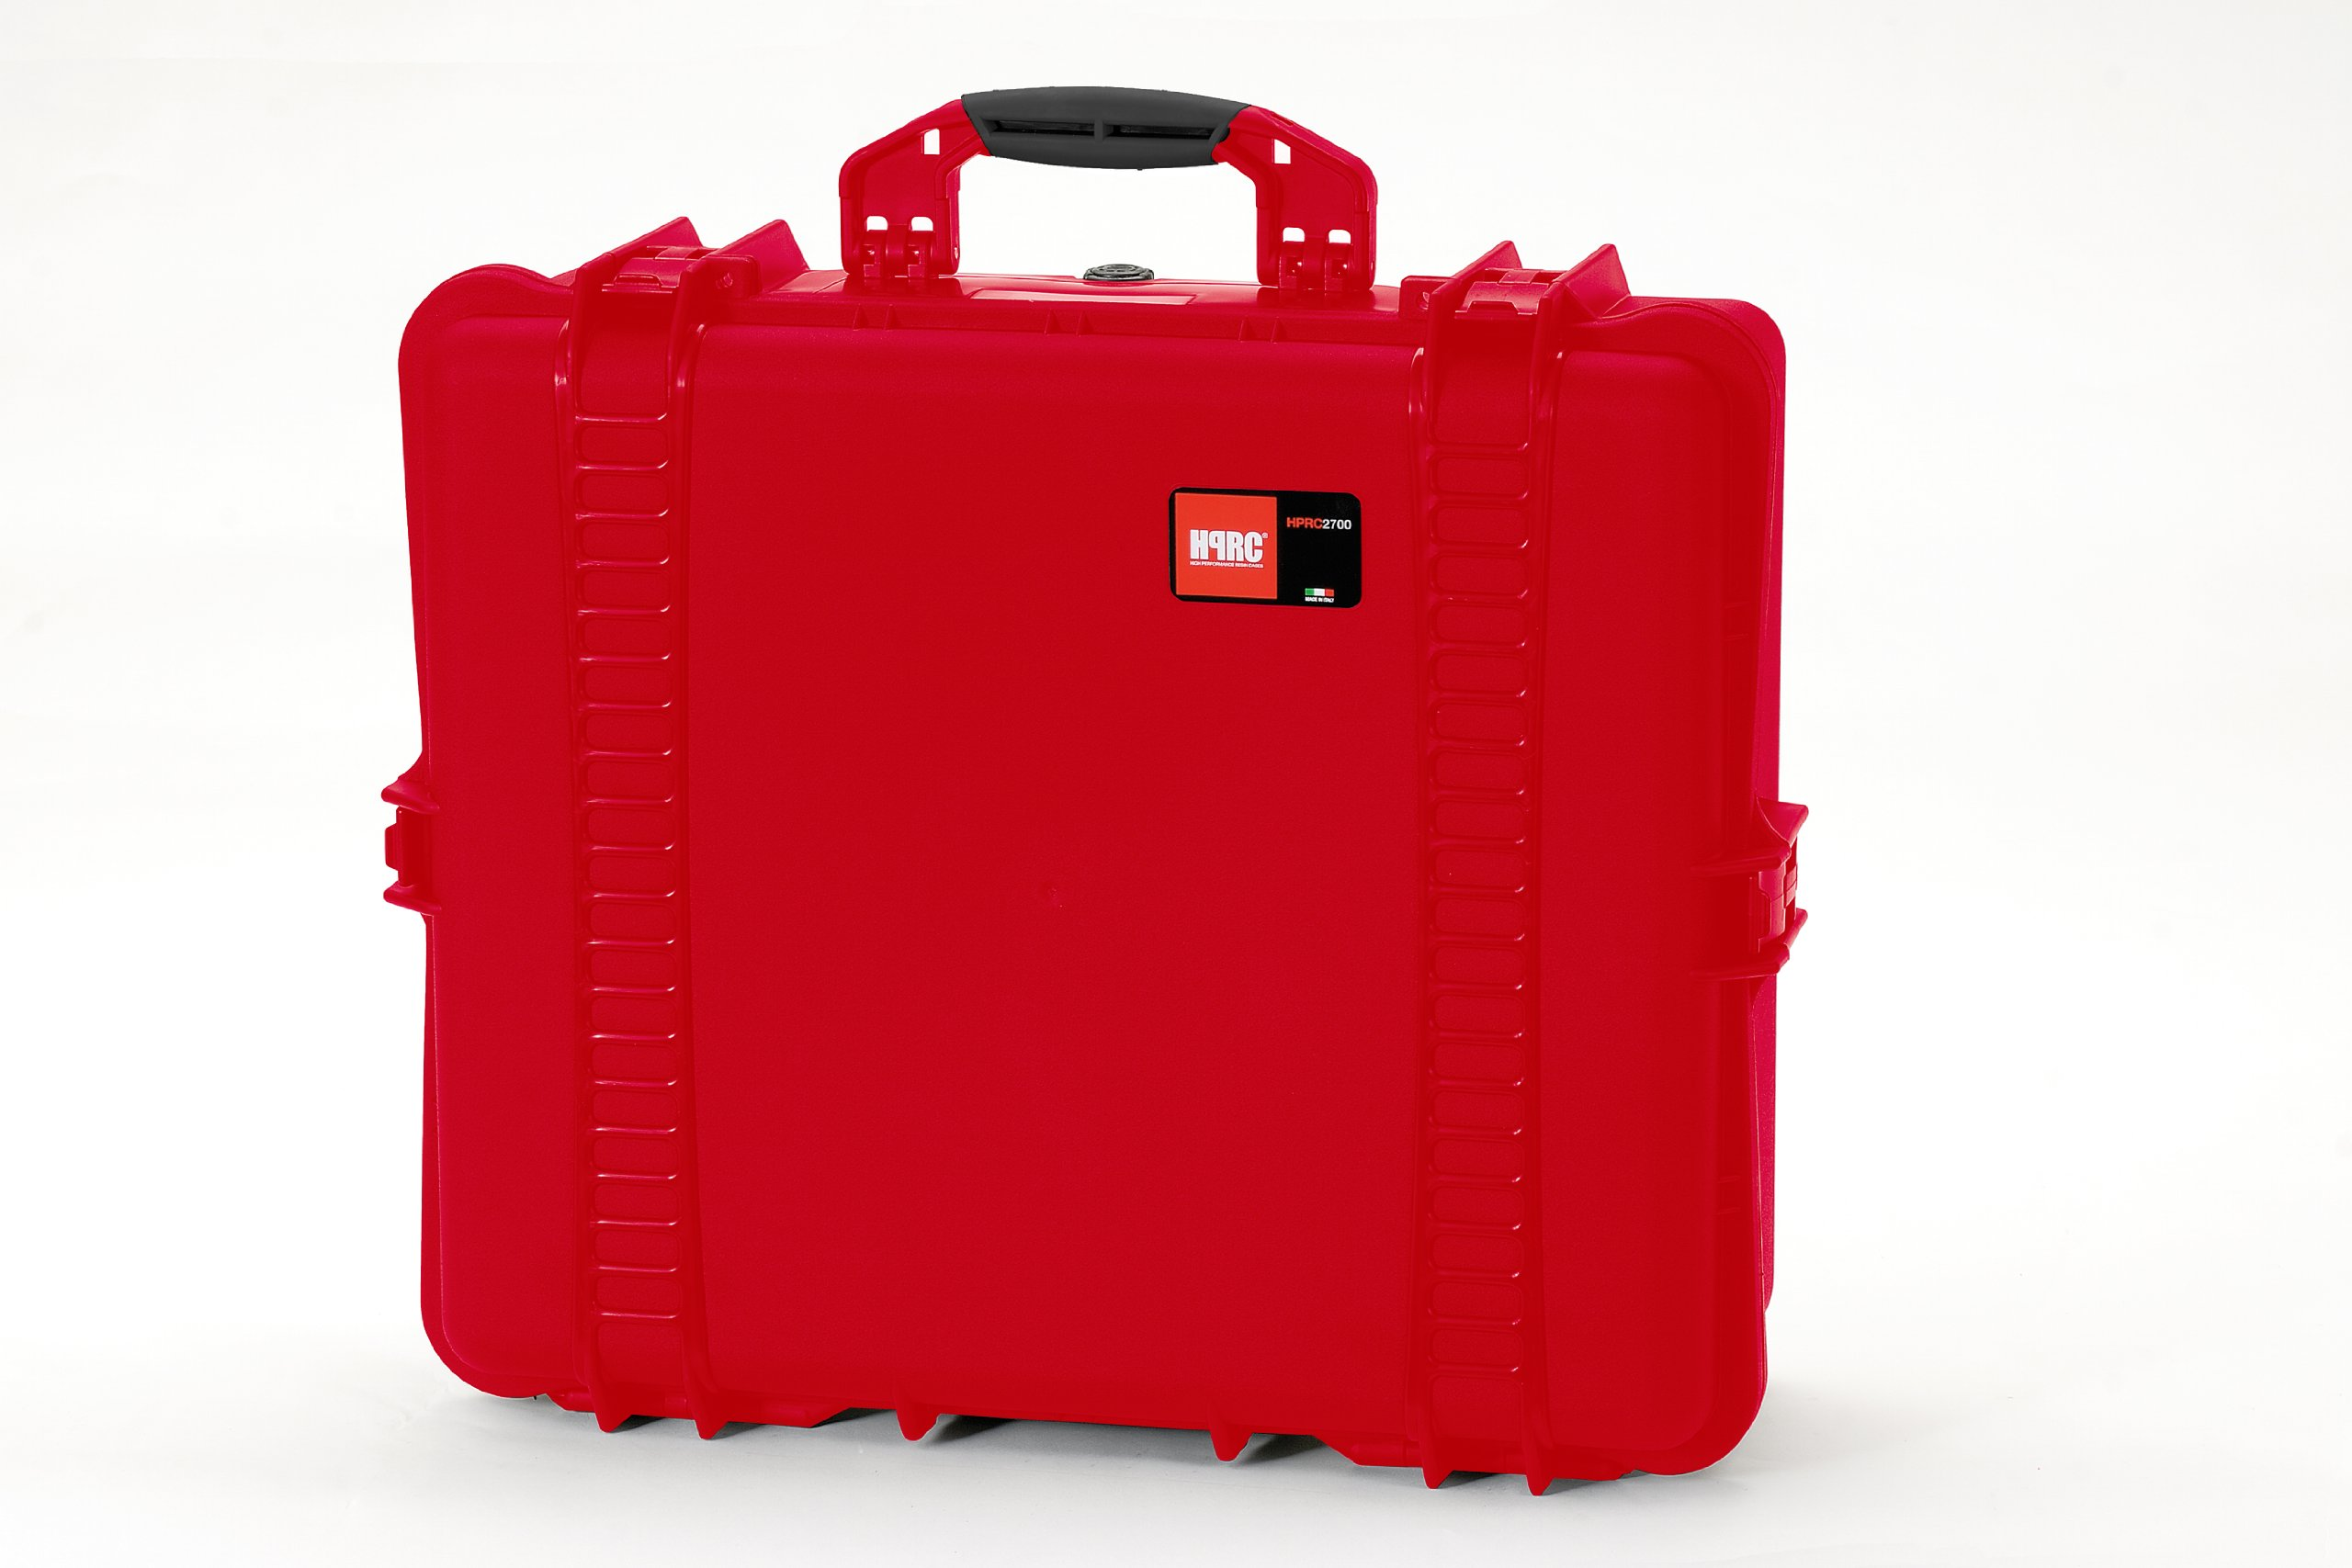 HPRC 2700F Hard Case with Cubed Foam (Red)